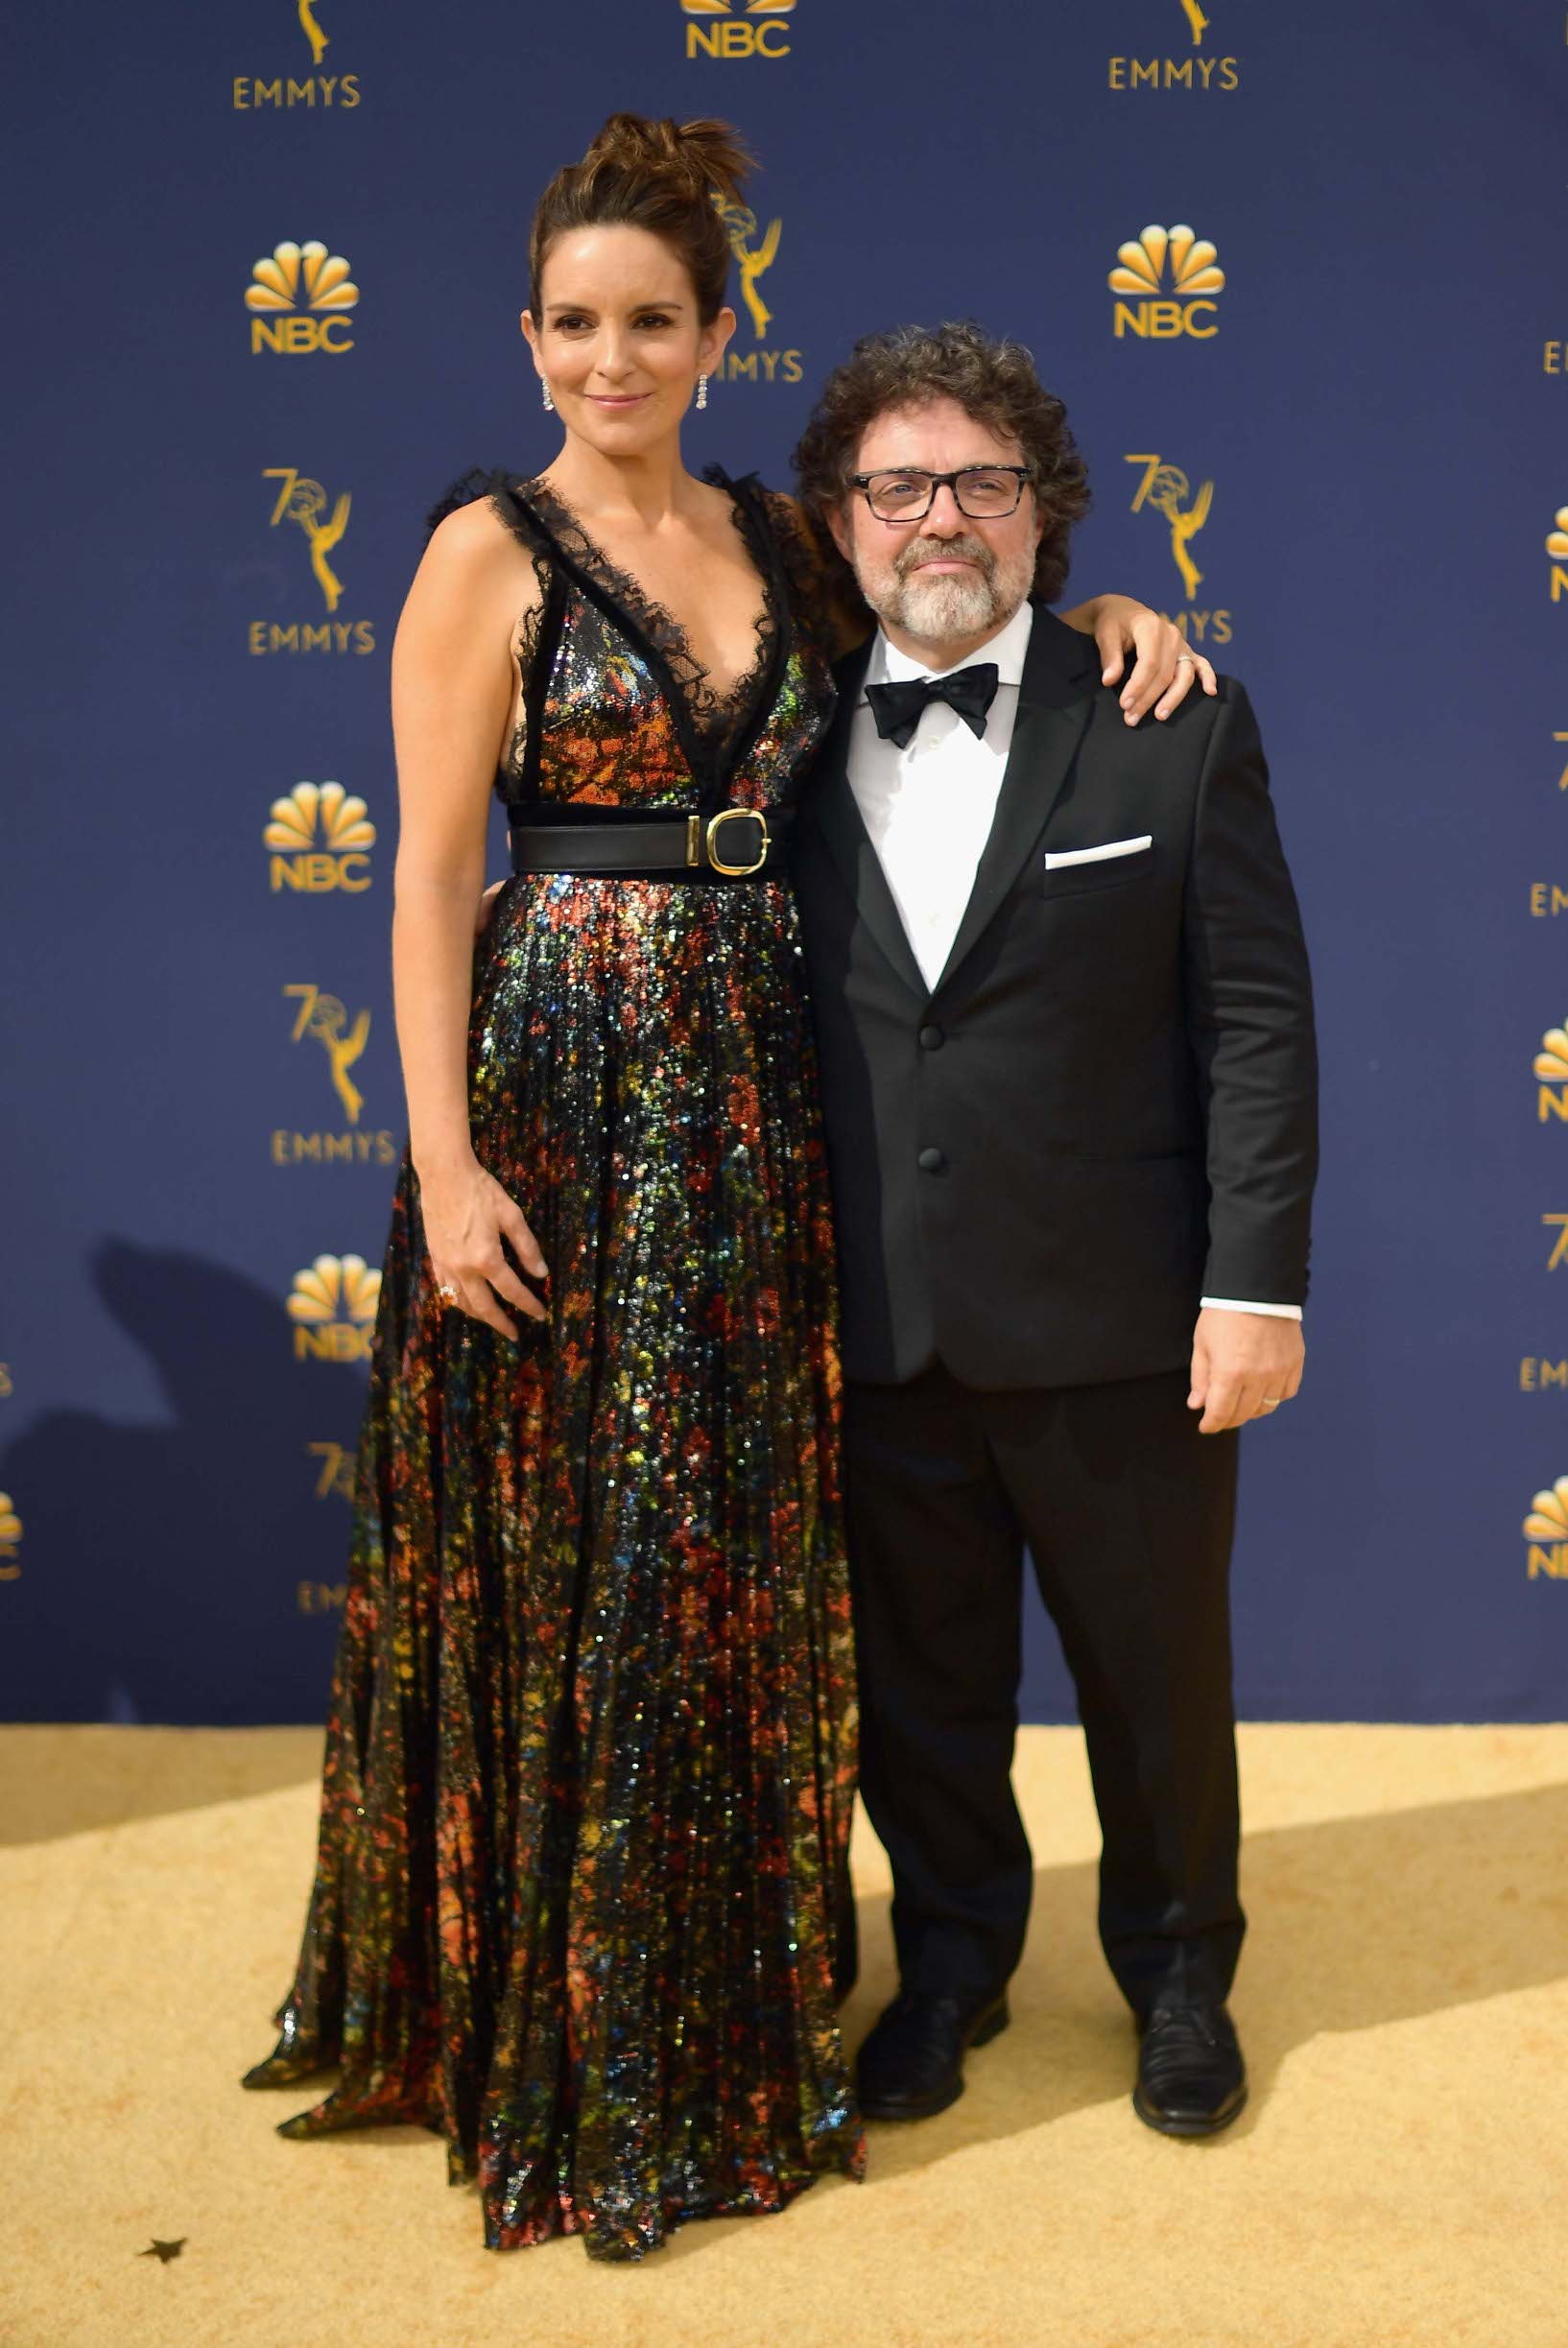 LOS ANGELES, CA - SEPTEMBER 17:  Tina Fey (L) and Jeff Richmond attend the 70th Emmy Awards at Microsoft Theater on September 17, 2018 in Los Angeles, California.  (Photo by Matt Winkelmeyer/Getty Images)